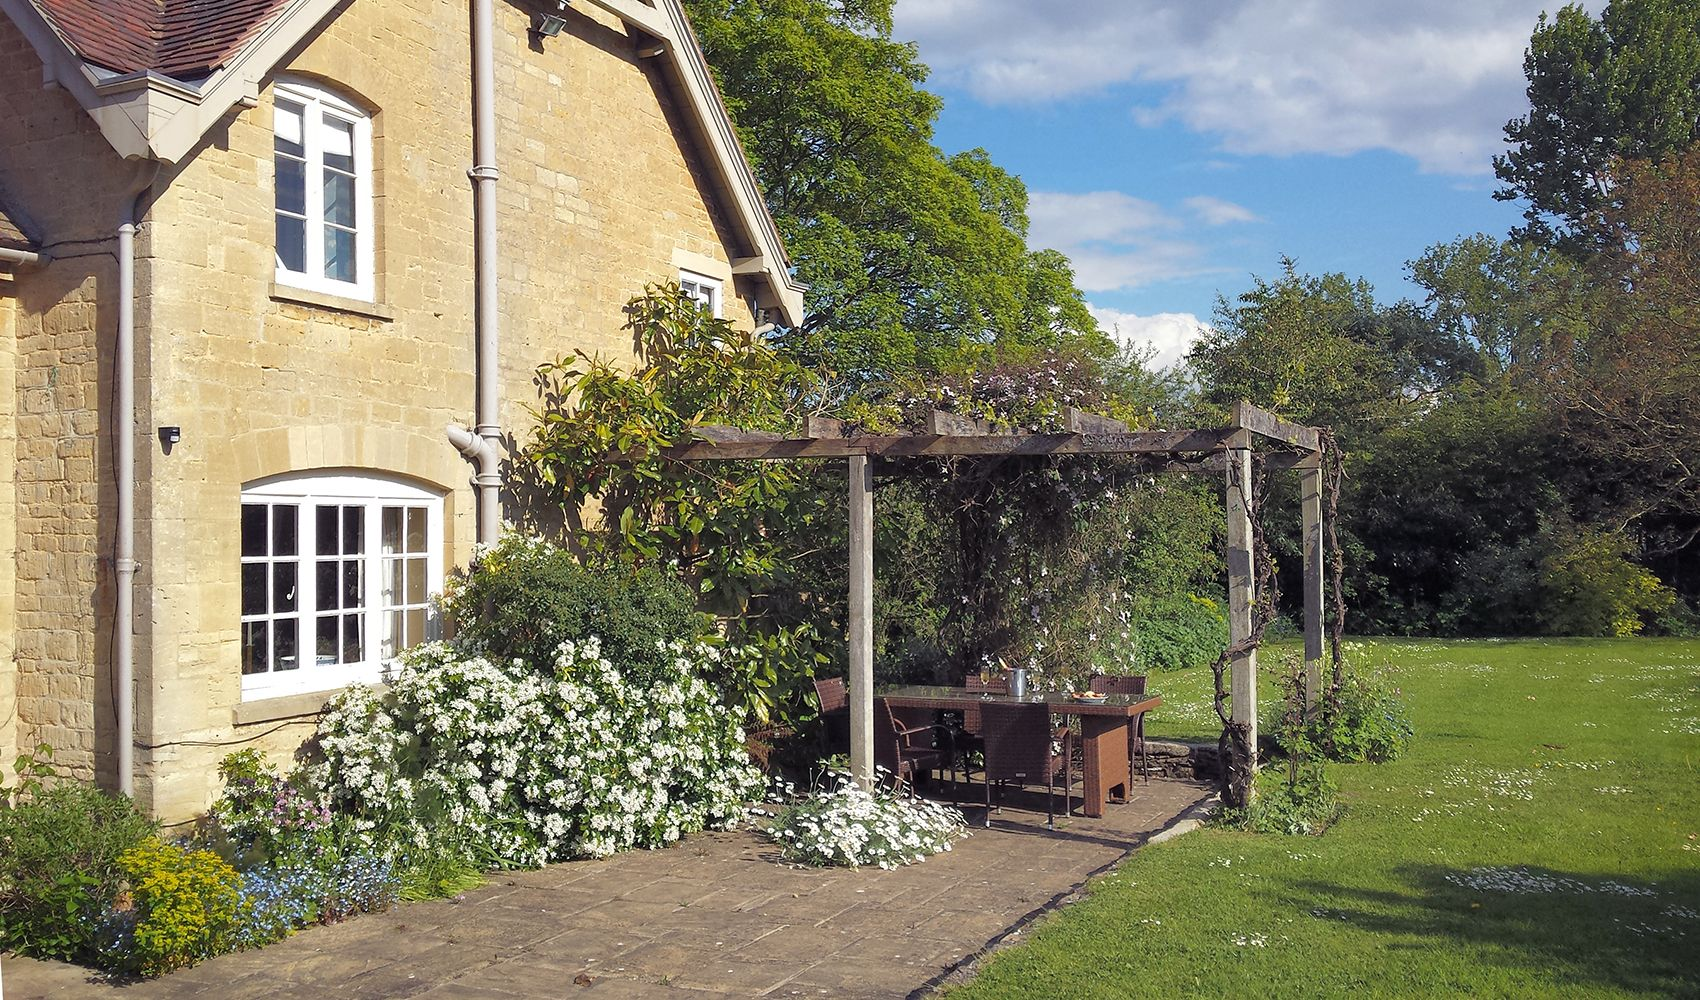 Terrace with vines and rose-covered pergola, garden furniture and barbecue